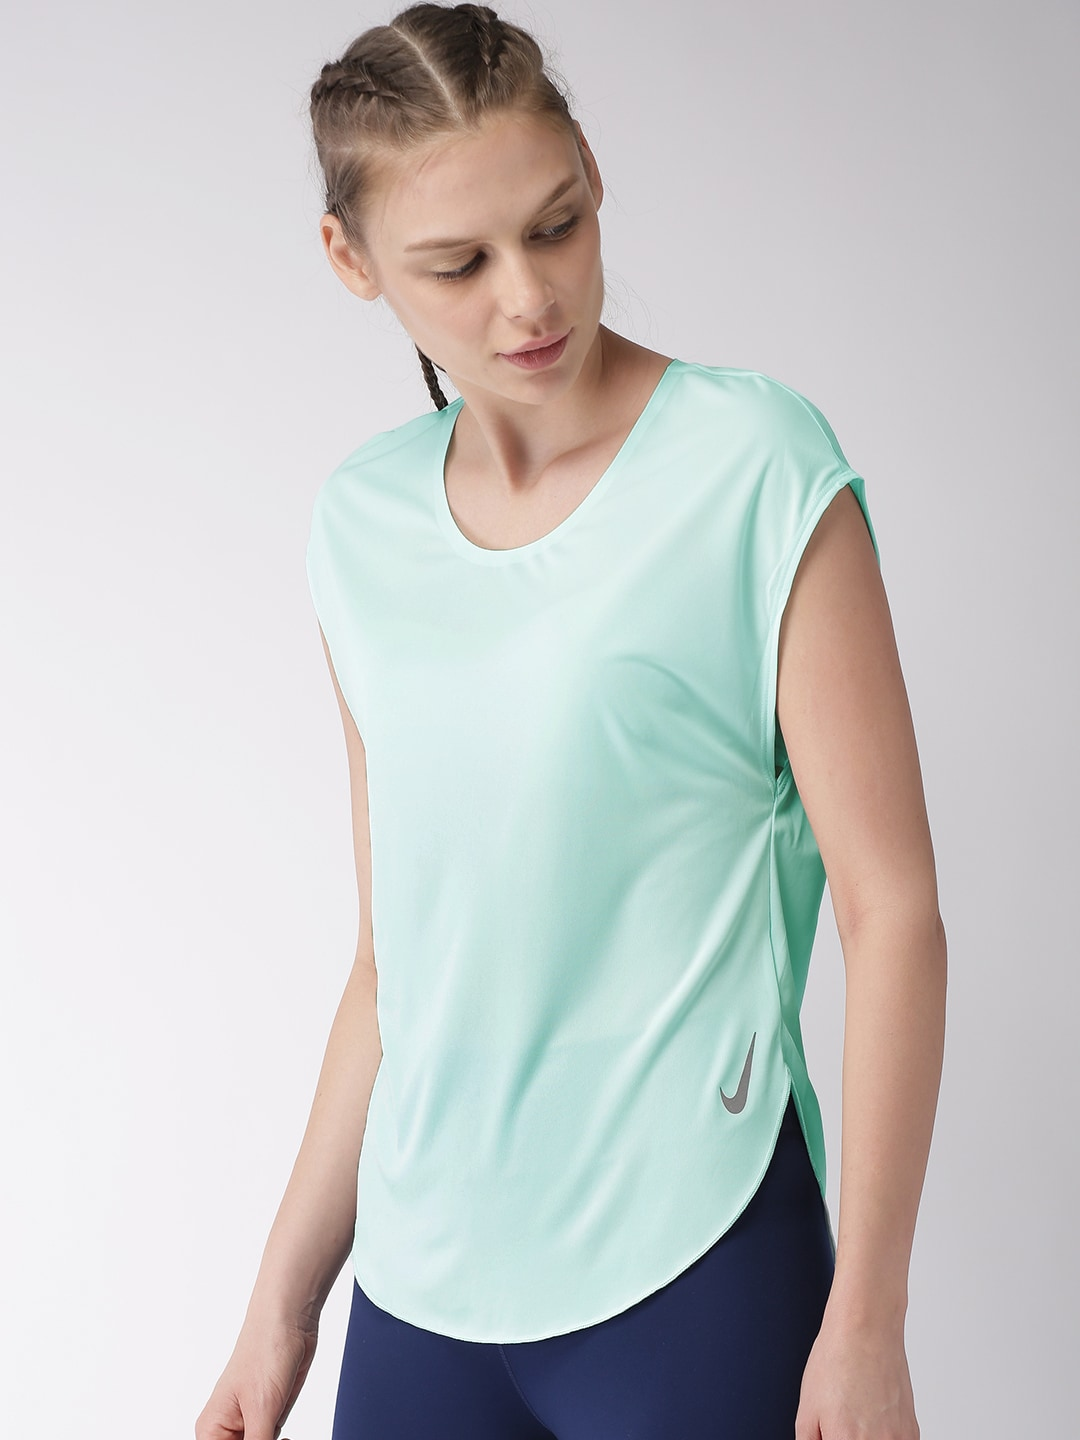 the latest 76c7f 93b5e Nike Tops - Buy Nike Tops Online in India